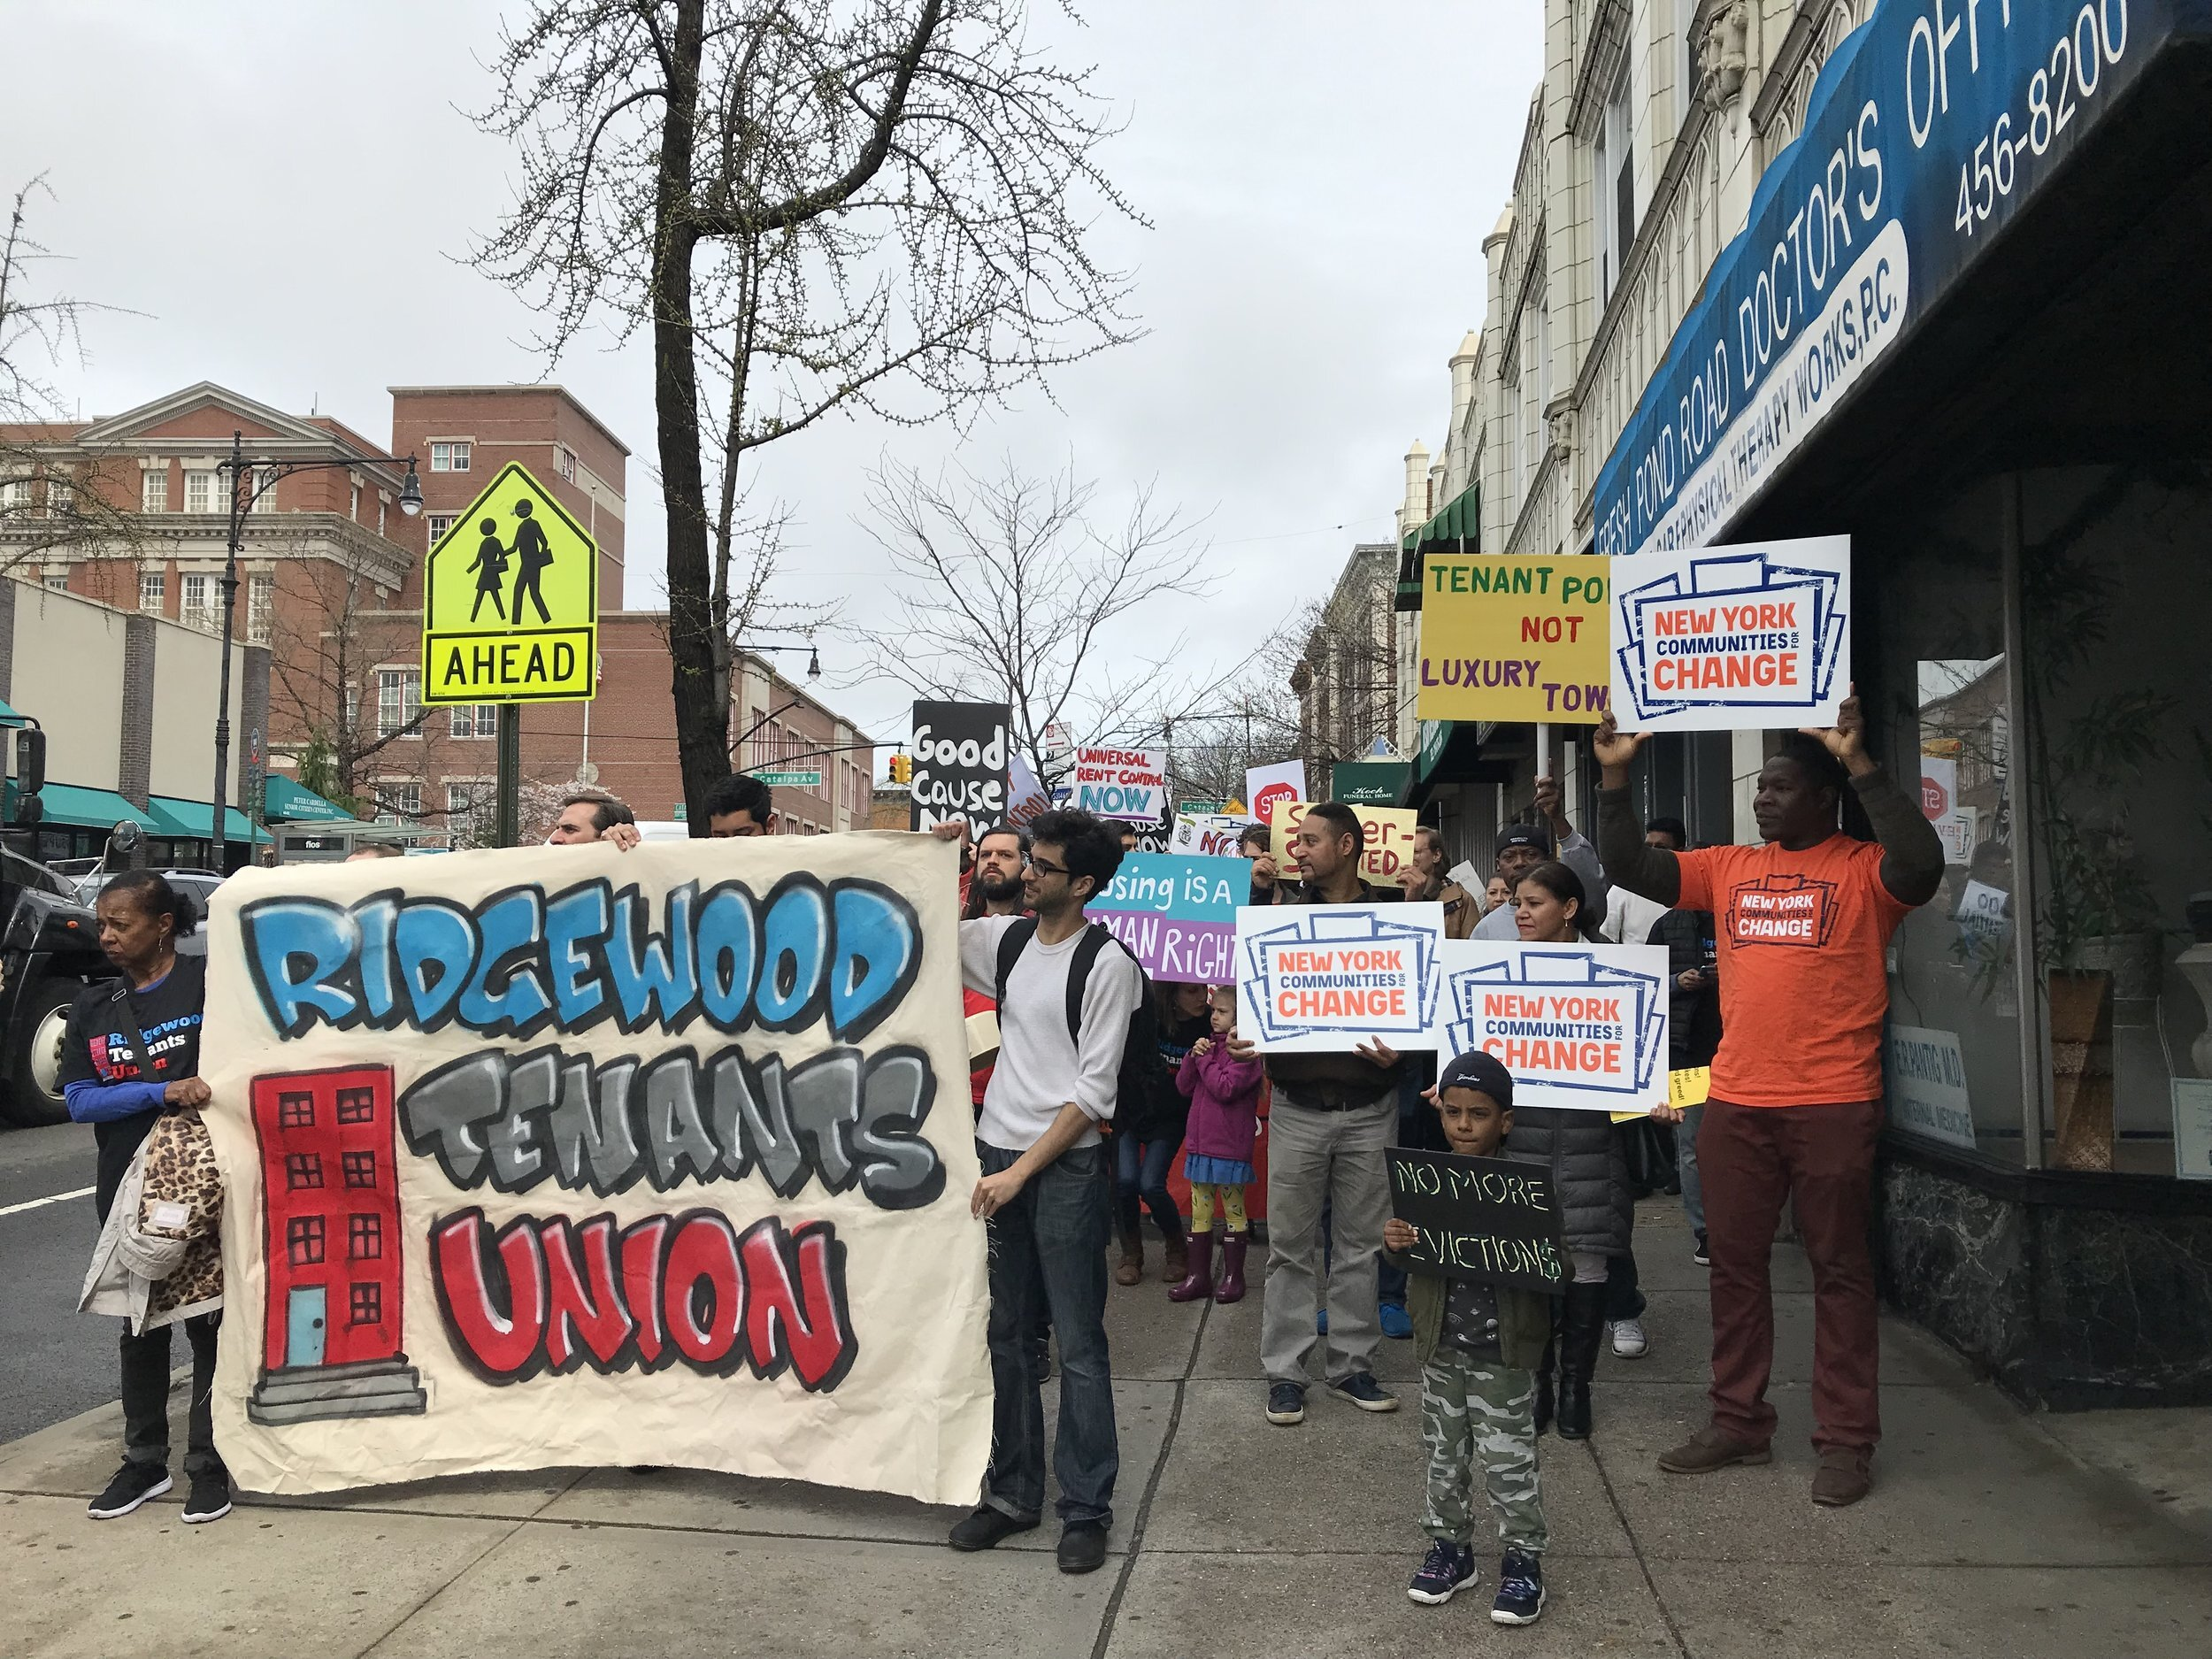 Members of the Ridgewood Tenants Union marched to demand protections for renters last year. A coalition of more than 70 tenants' rights groups have unveiled their priorities for the next legislative session.  Eagle  photo by David Brand.